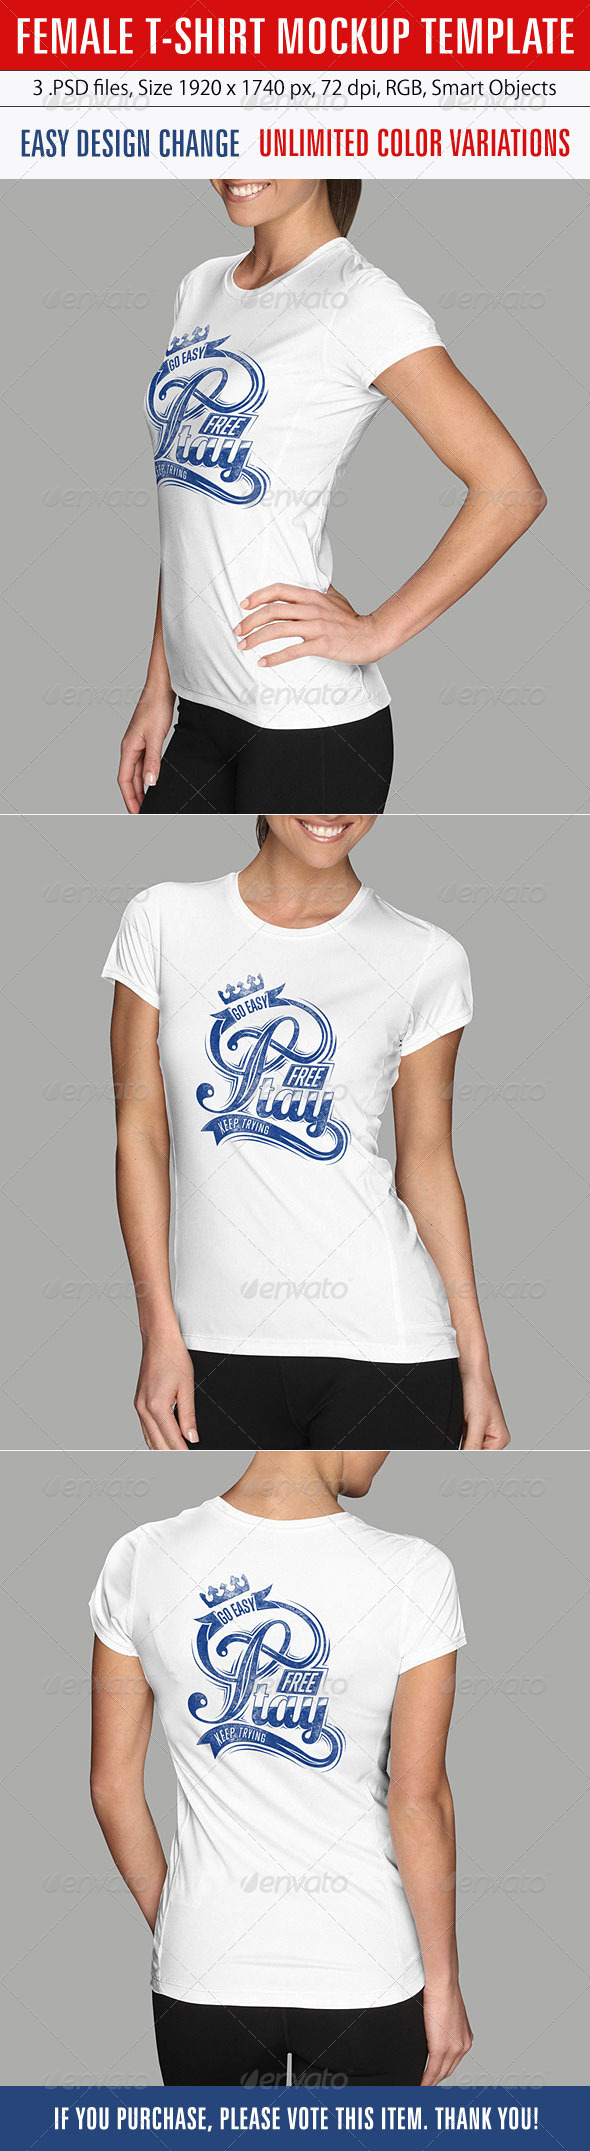 T shirt design application free - Buy Female T Shirt Mockup Template By Grapulo On Graphicriver Female T Shirt Mockup 3 Psd File Easy Design And Color Change Unlimited Colours Smart